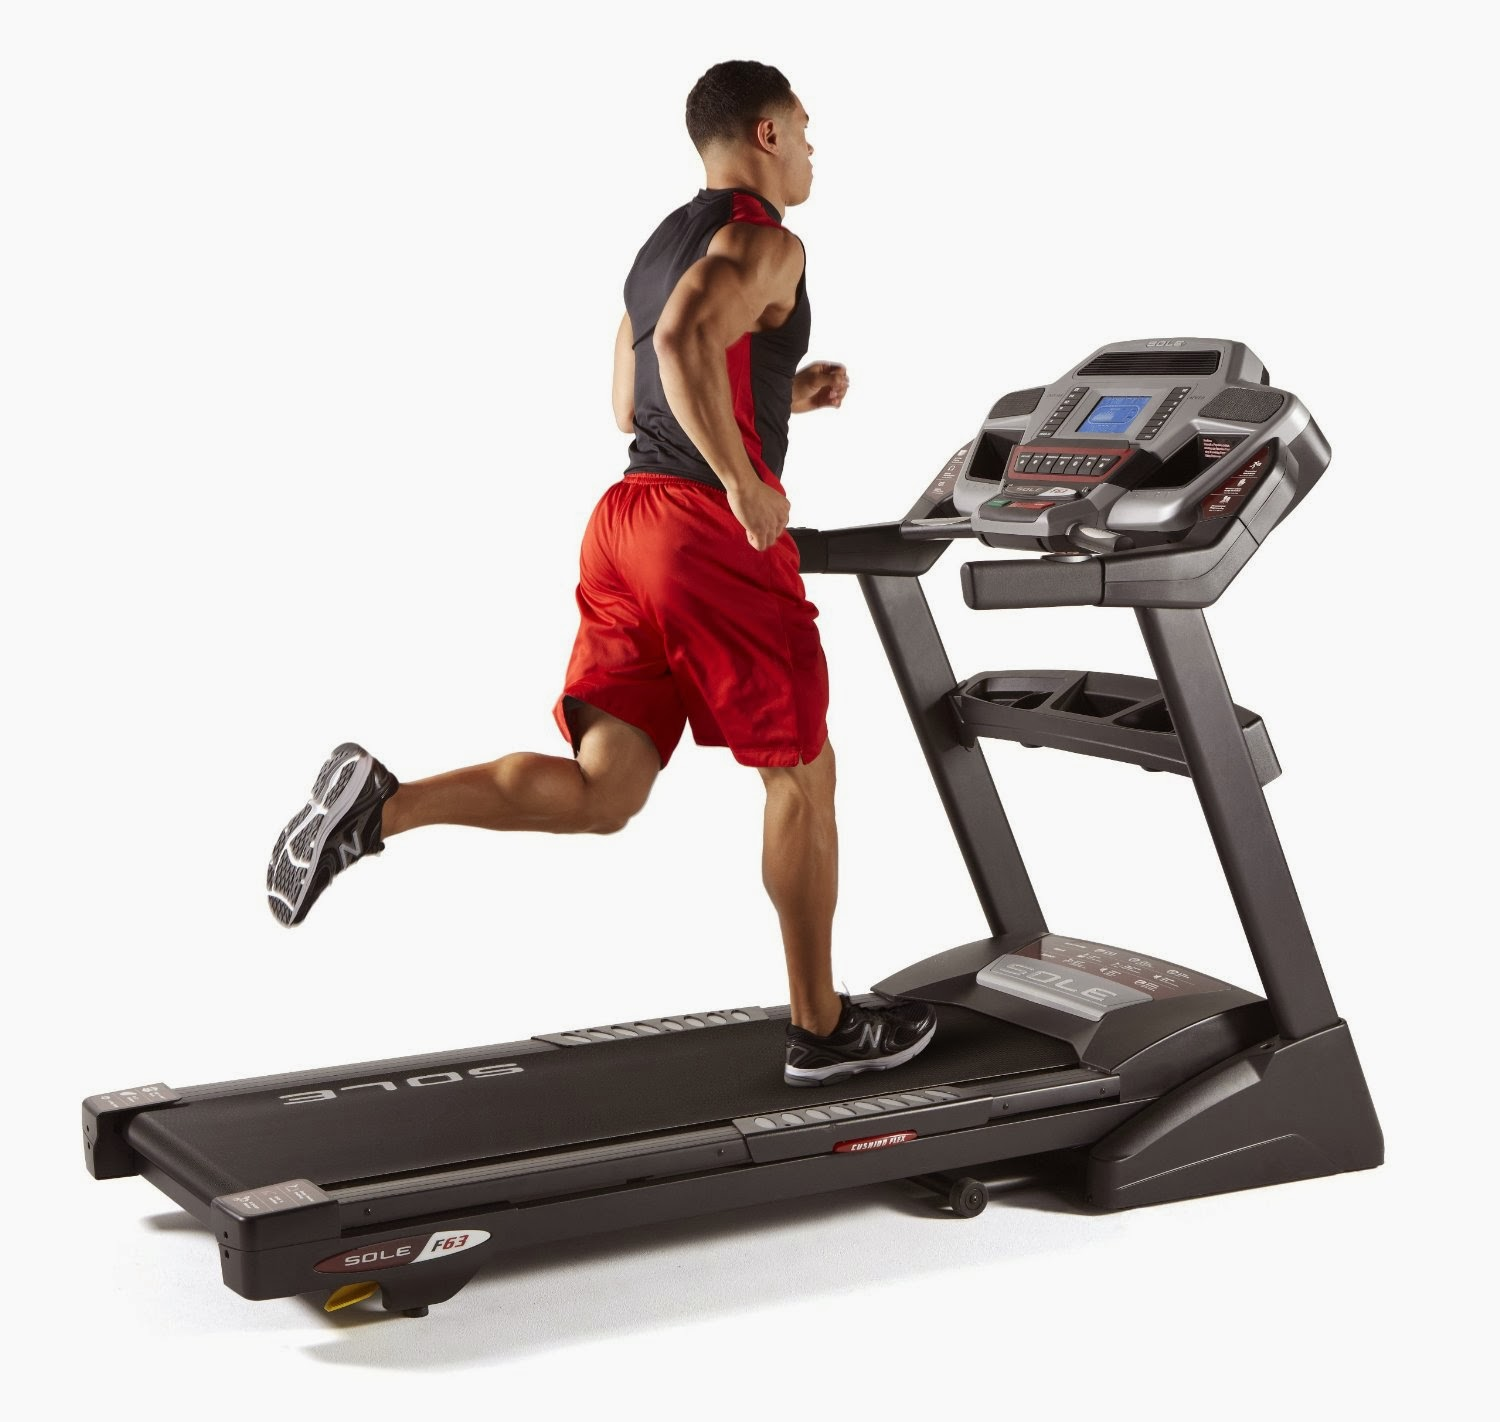 Sole Fitness F63 Treadmill versus Sole Fitness F80 Treadmill, compare & review features, buy at low prices